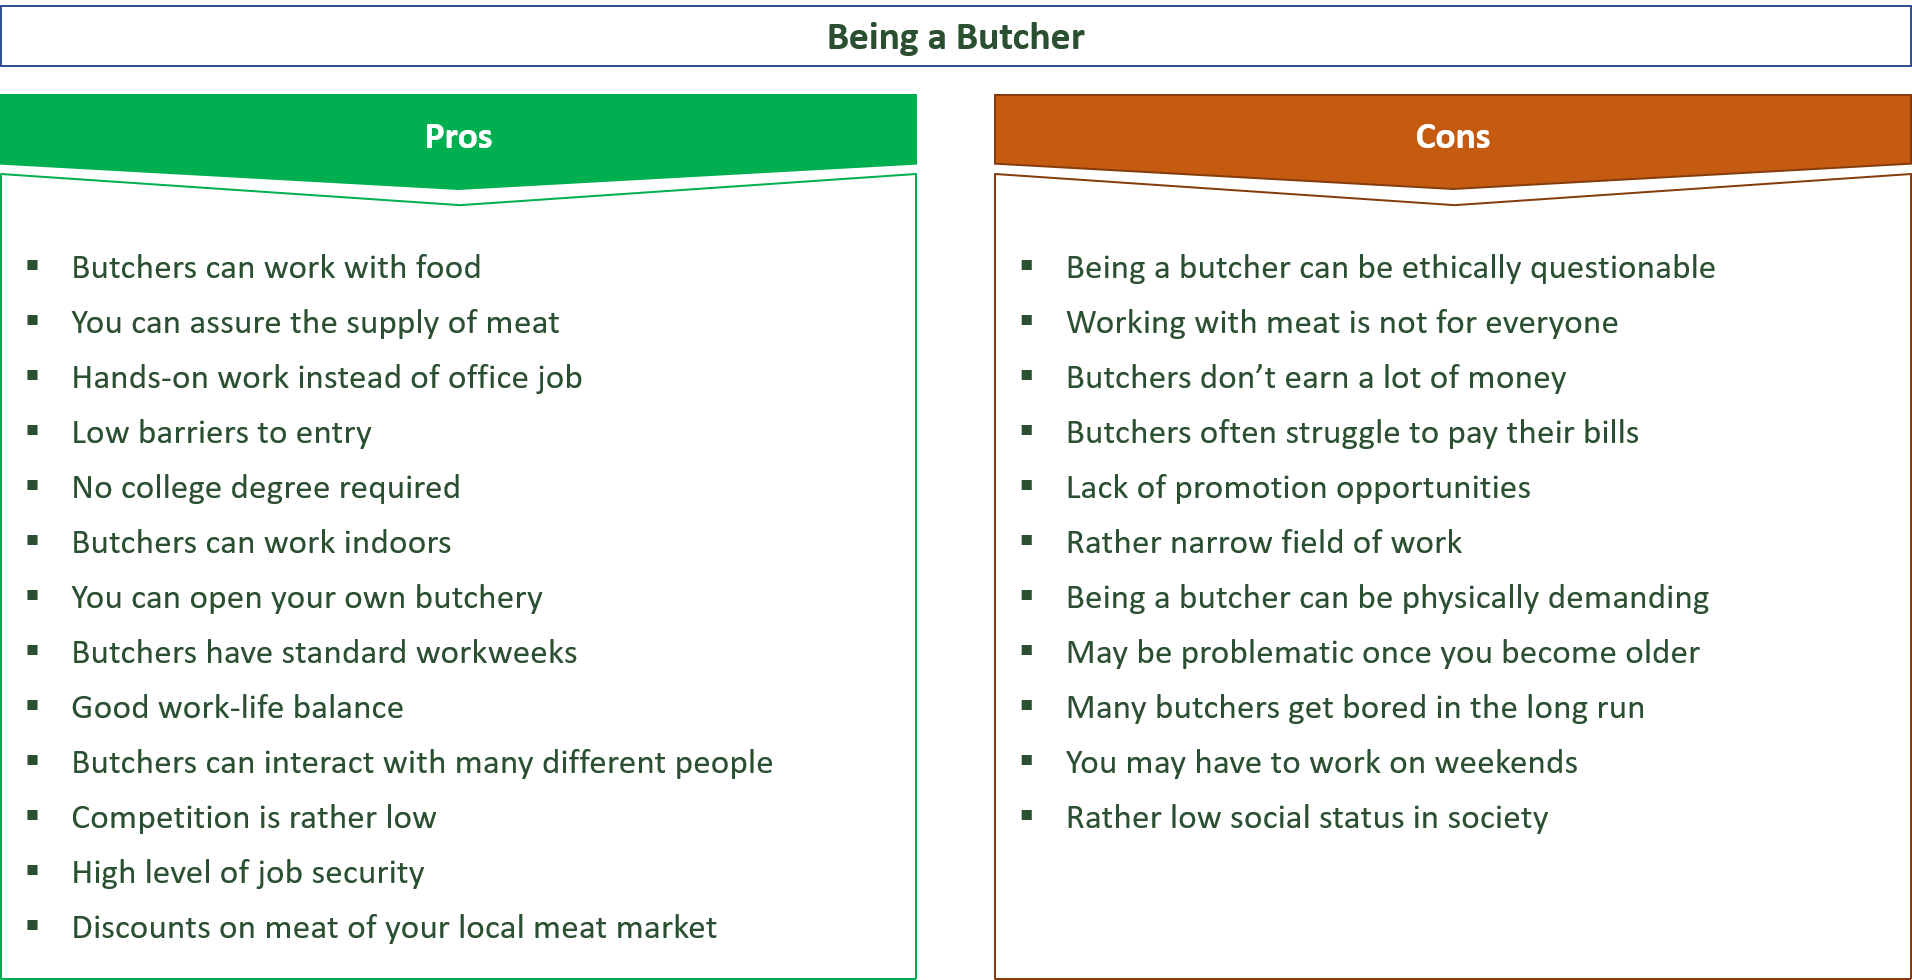 advantages and disadvantages of being a butcher